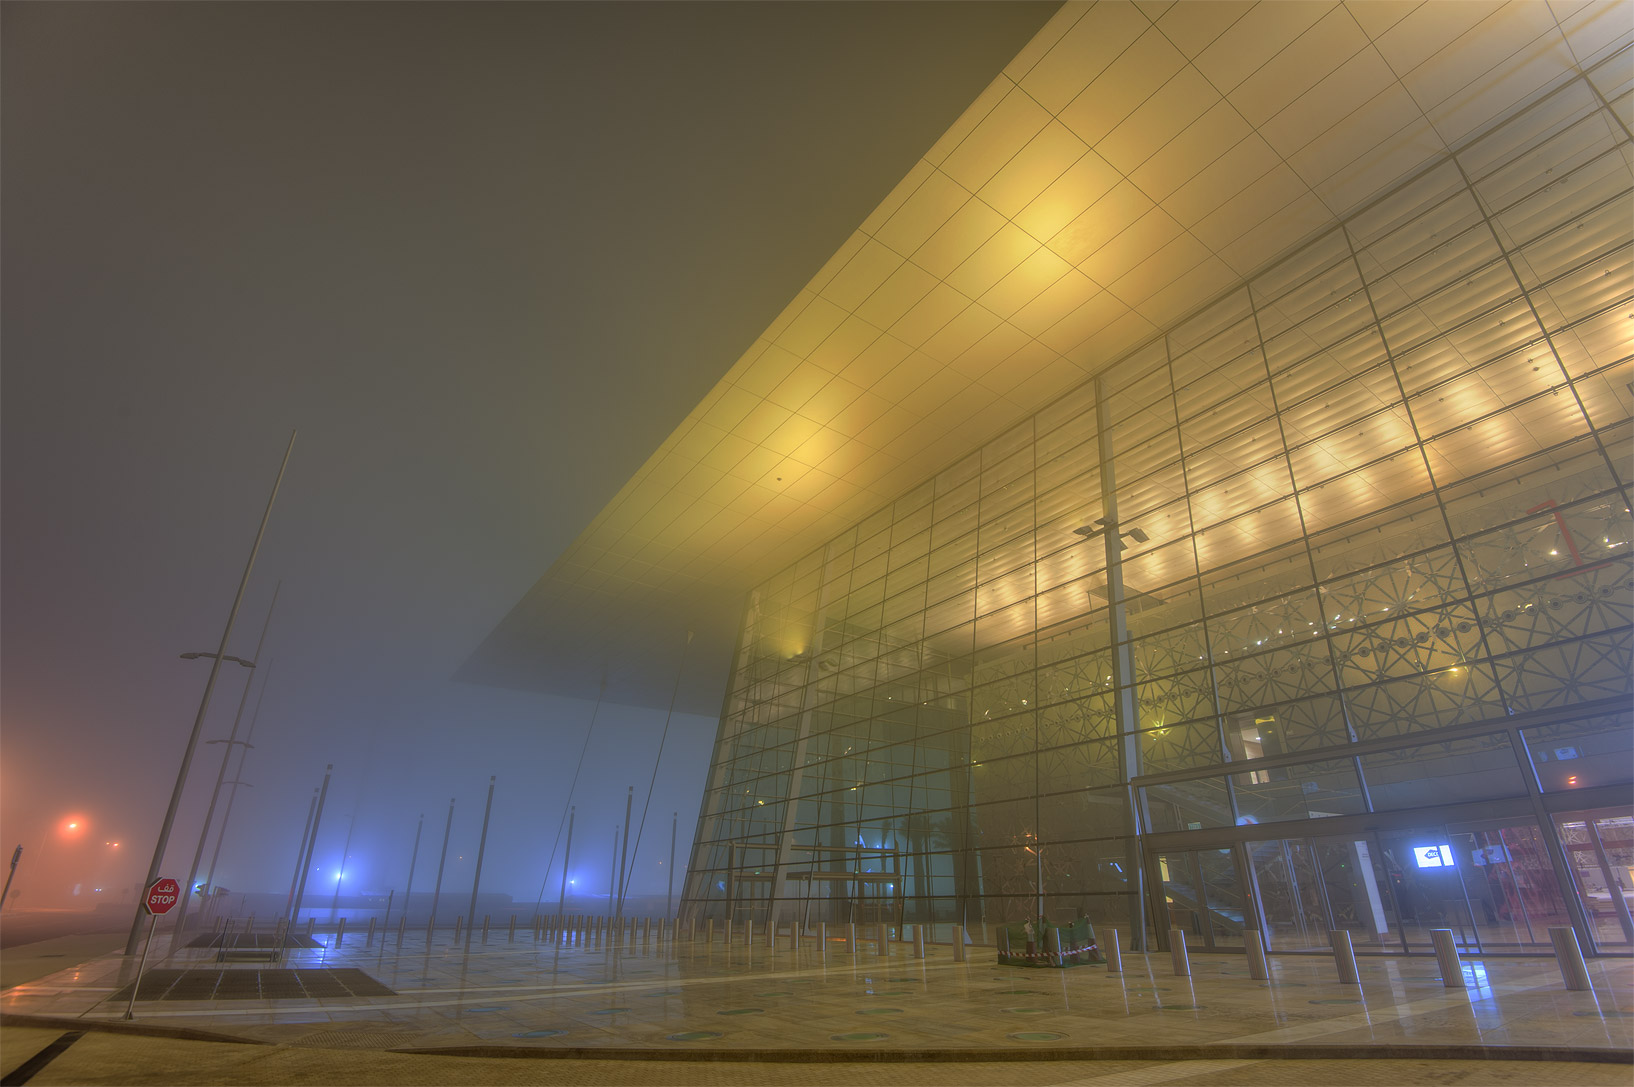 Exhibition and Convention Center (DECC) near City...St. in West Bay in fog. Doha, Qatar